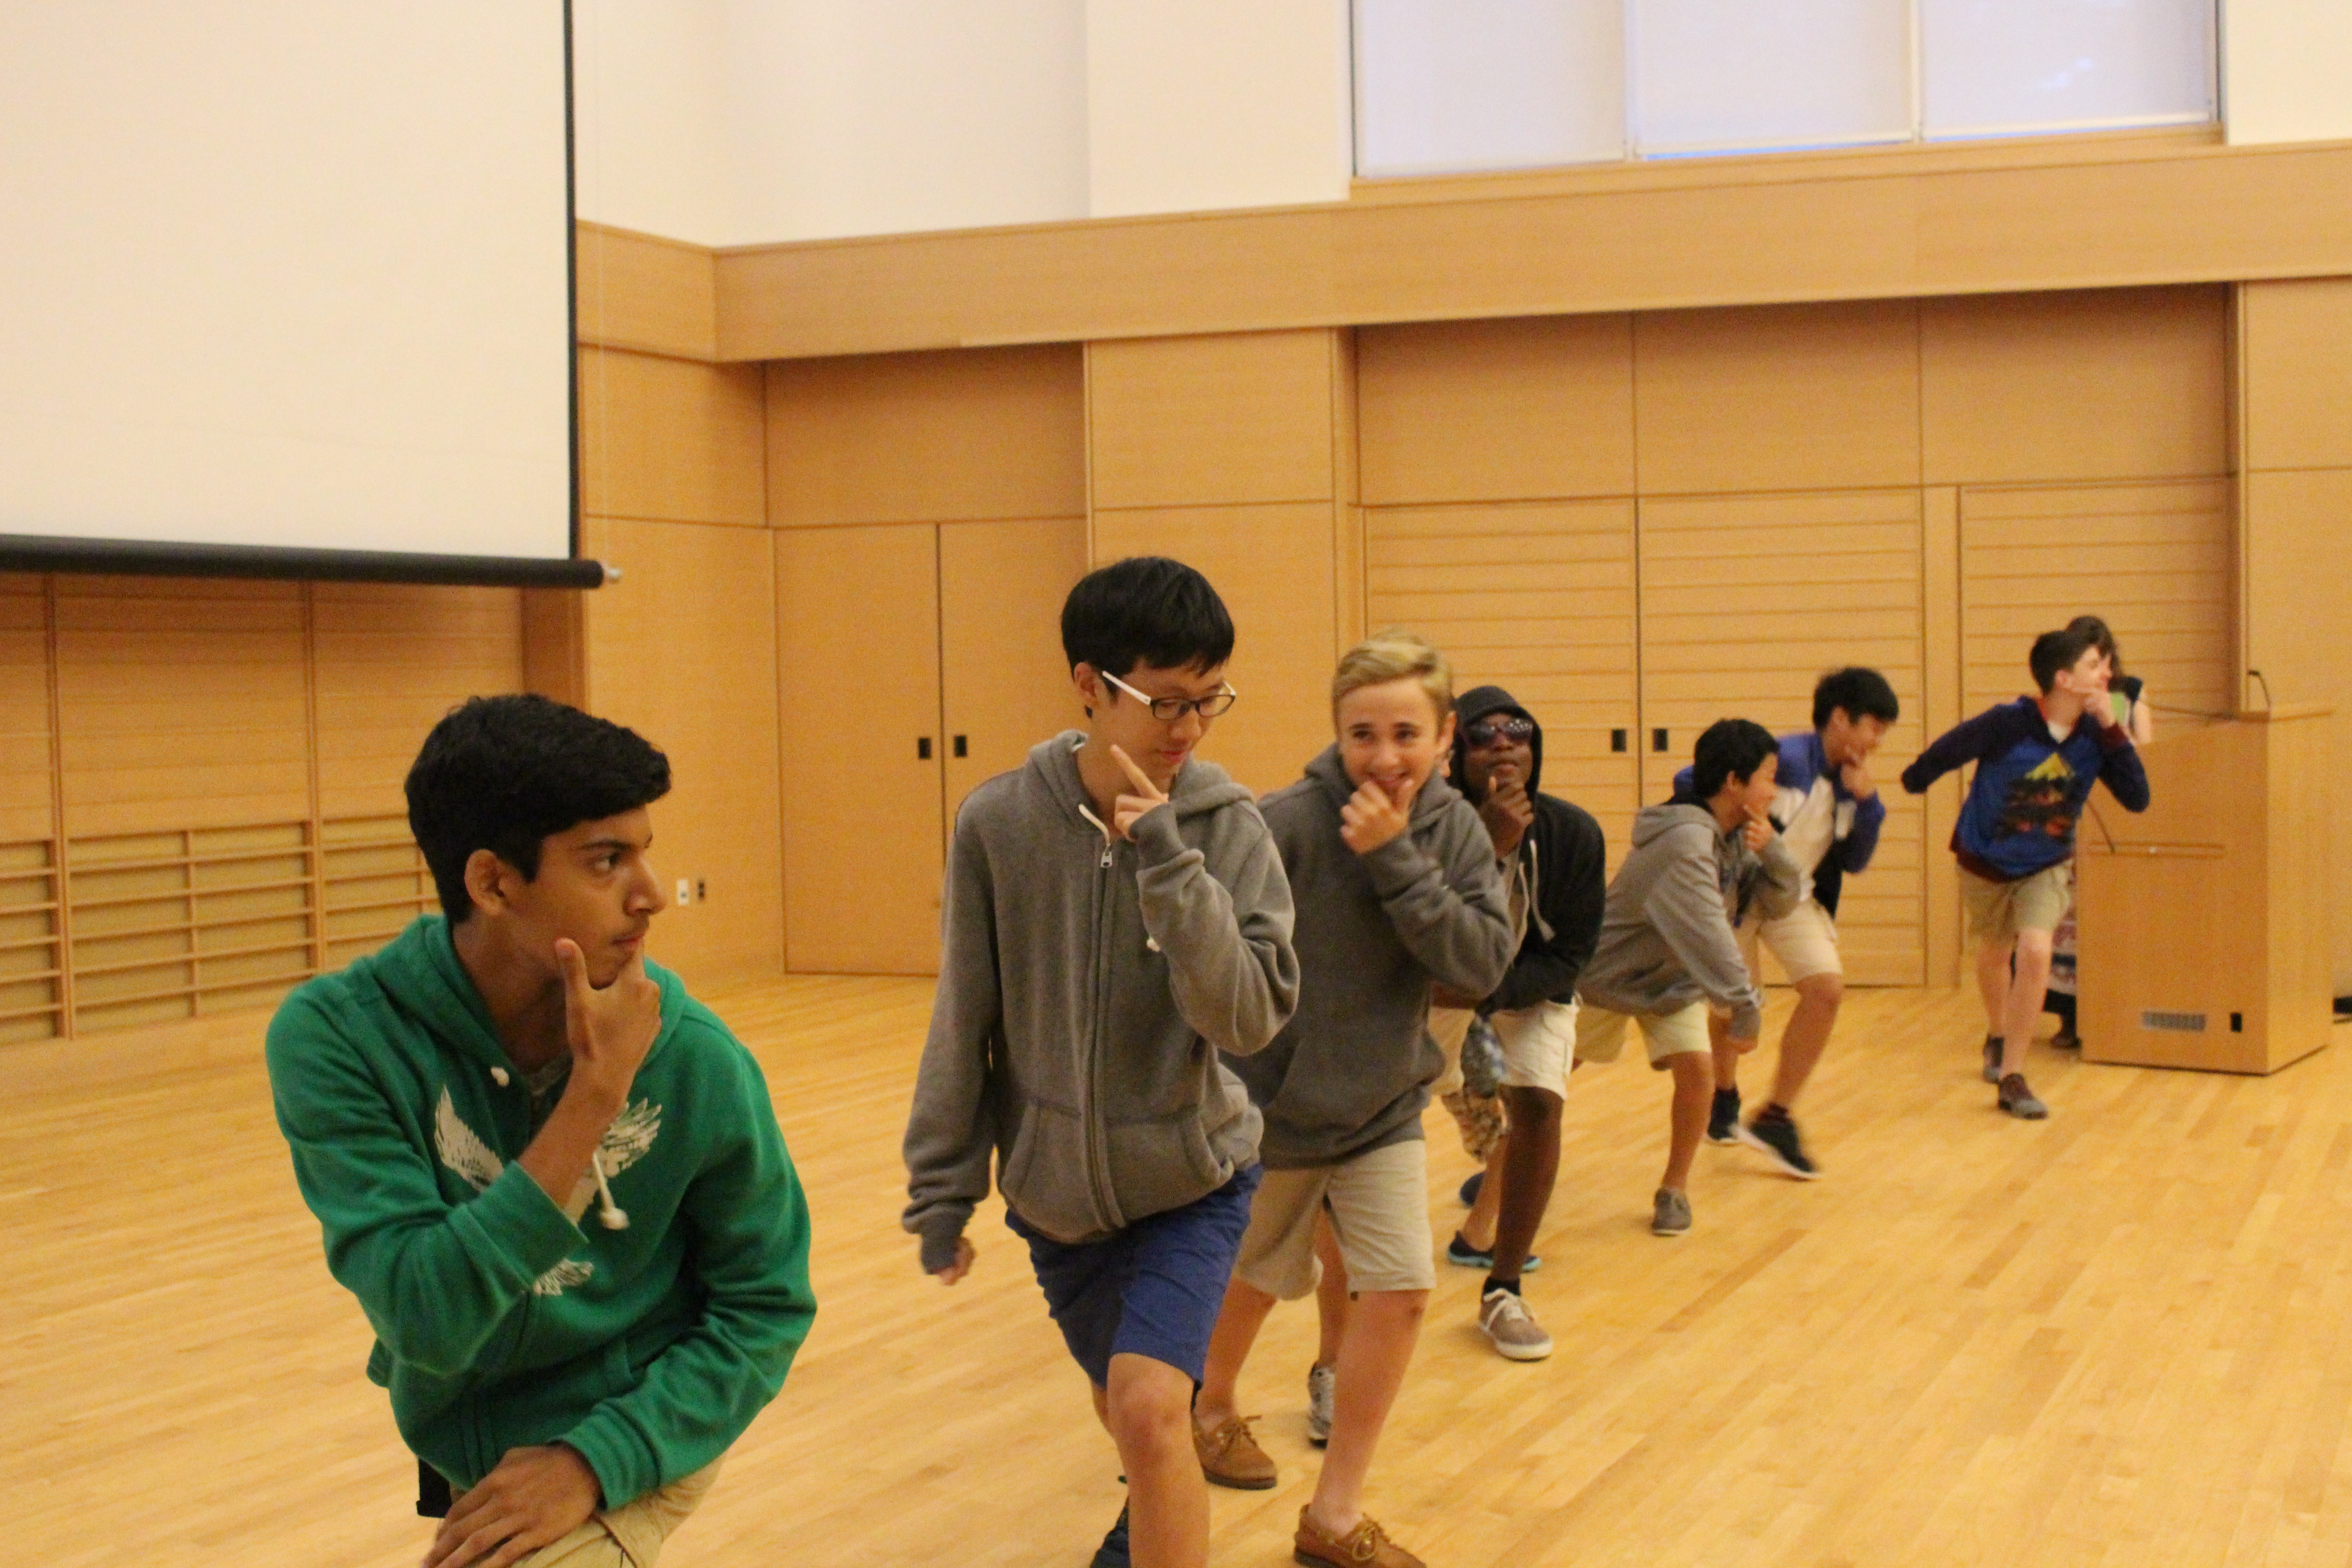 Eight boys strike a pose while dancing during the Talent Show.